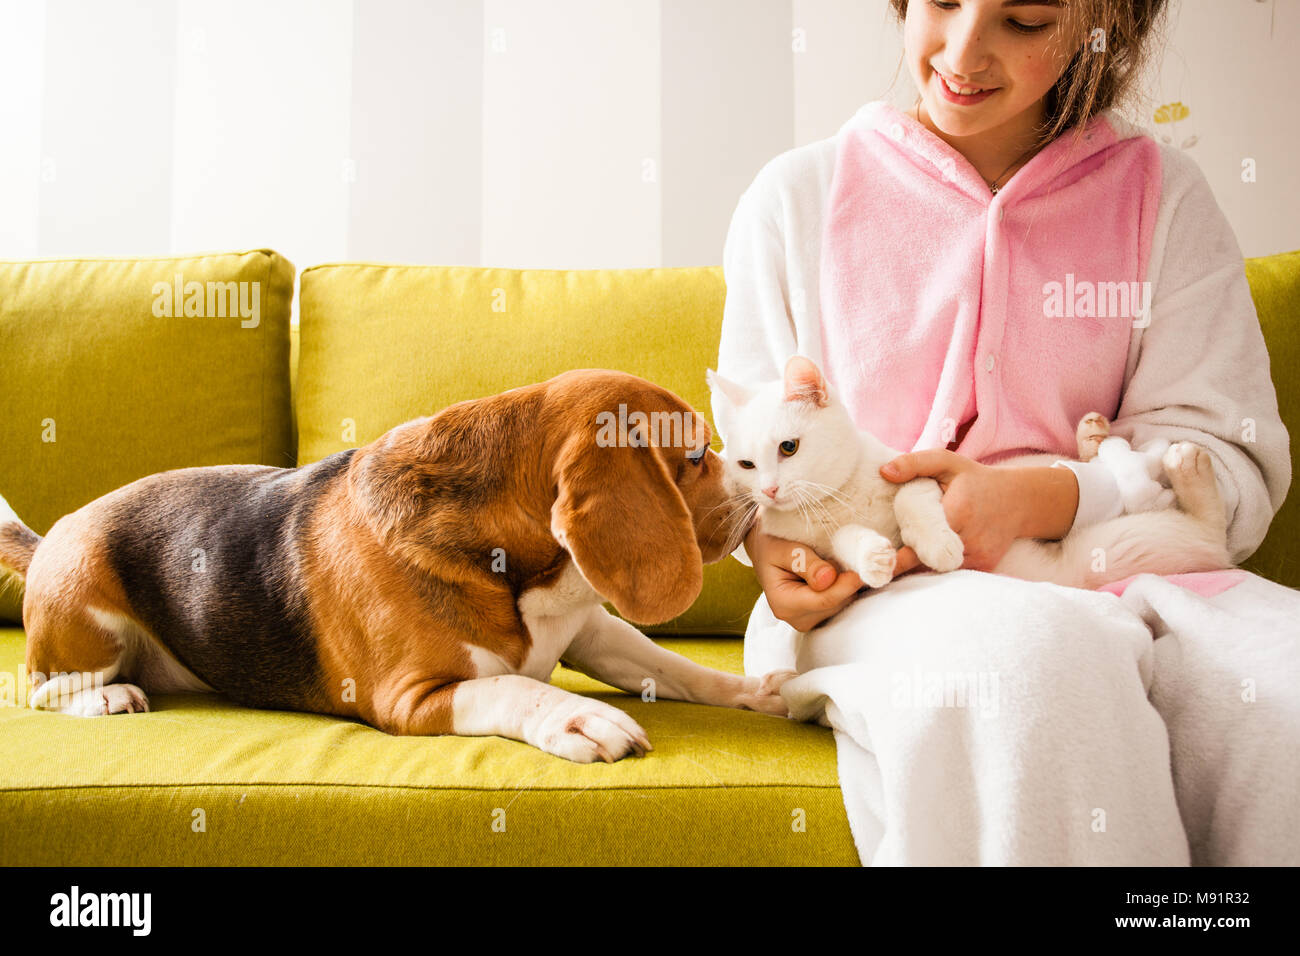 Animaux domestiques s'aimer Photo Stock